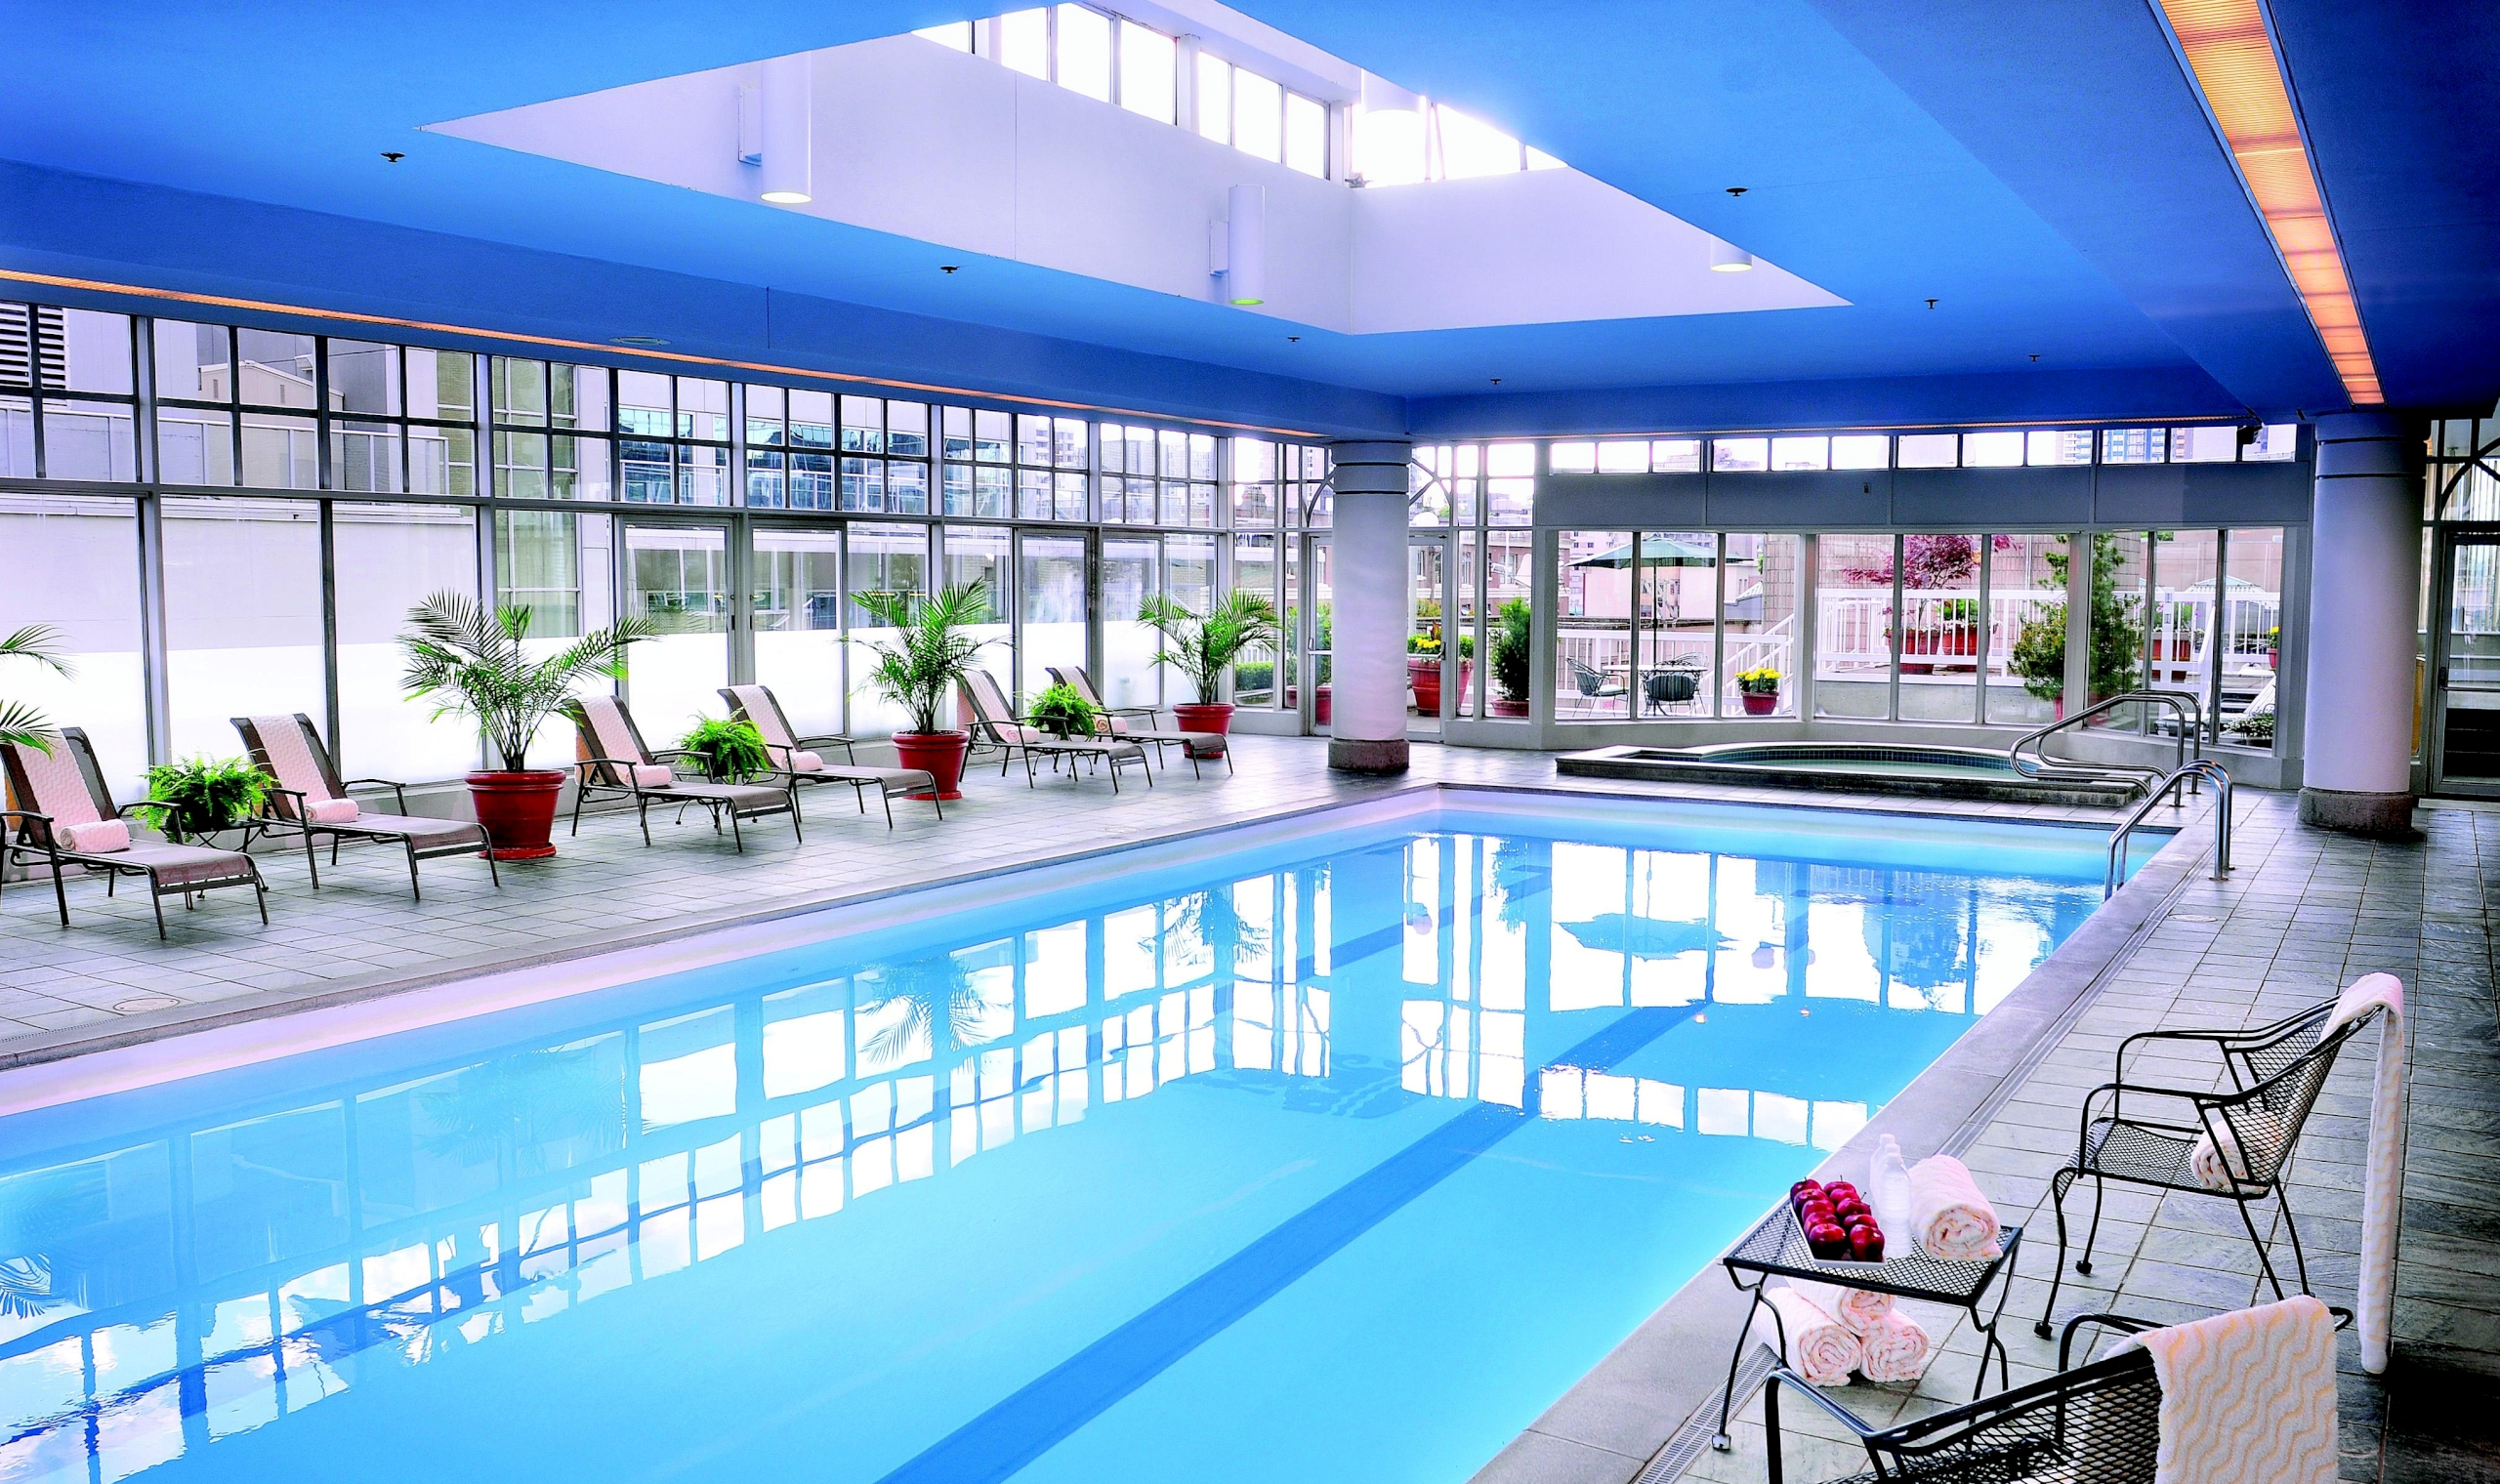 Fairmont hotel vancouver vancouver canadian affair for Indoor swimming pools vancouver